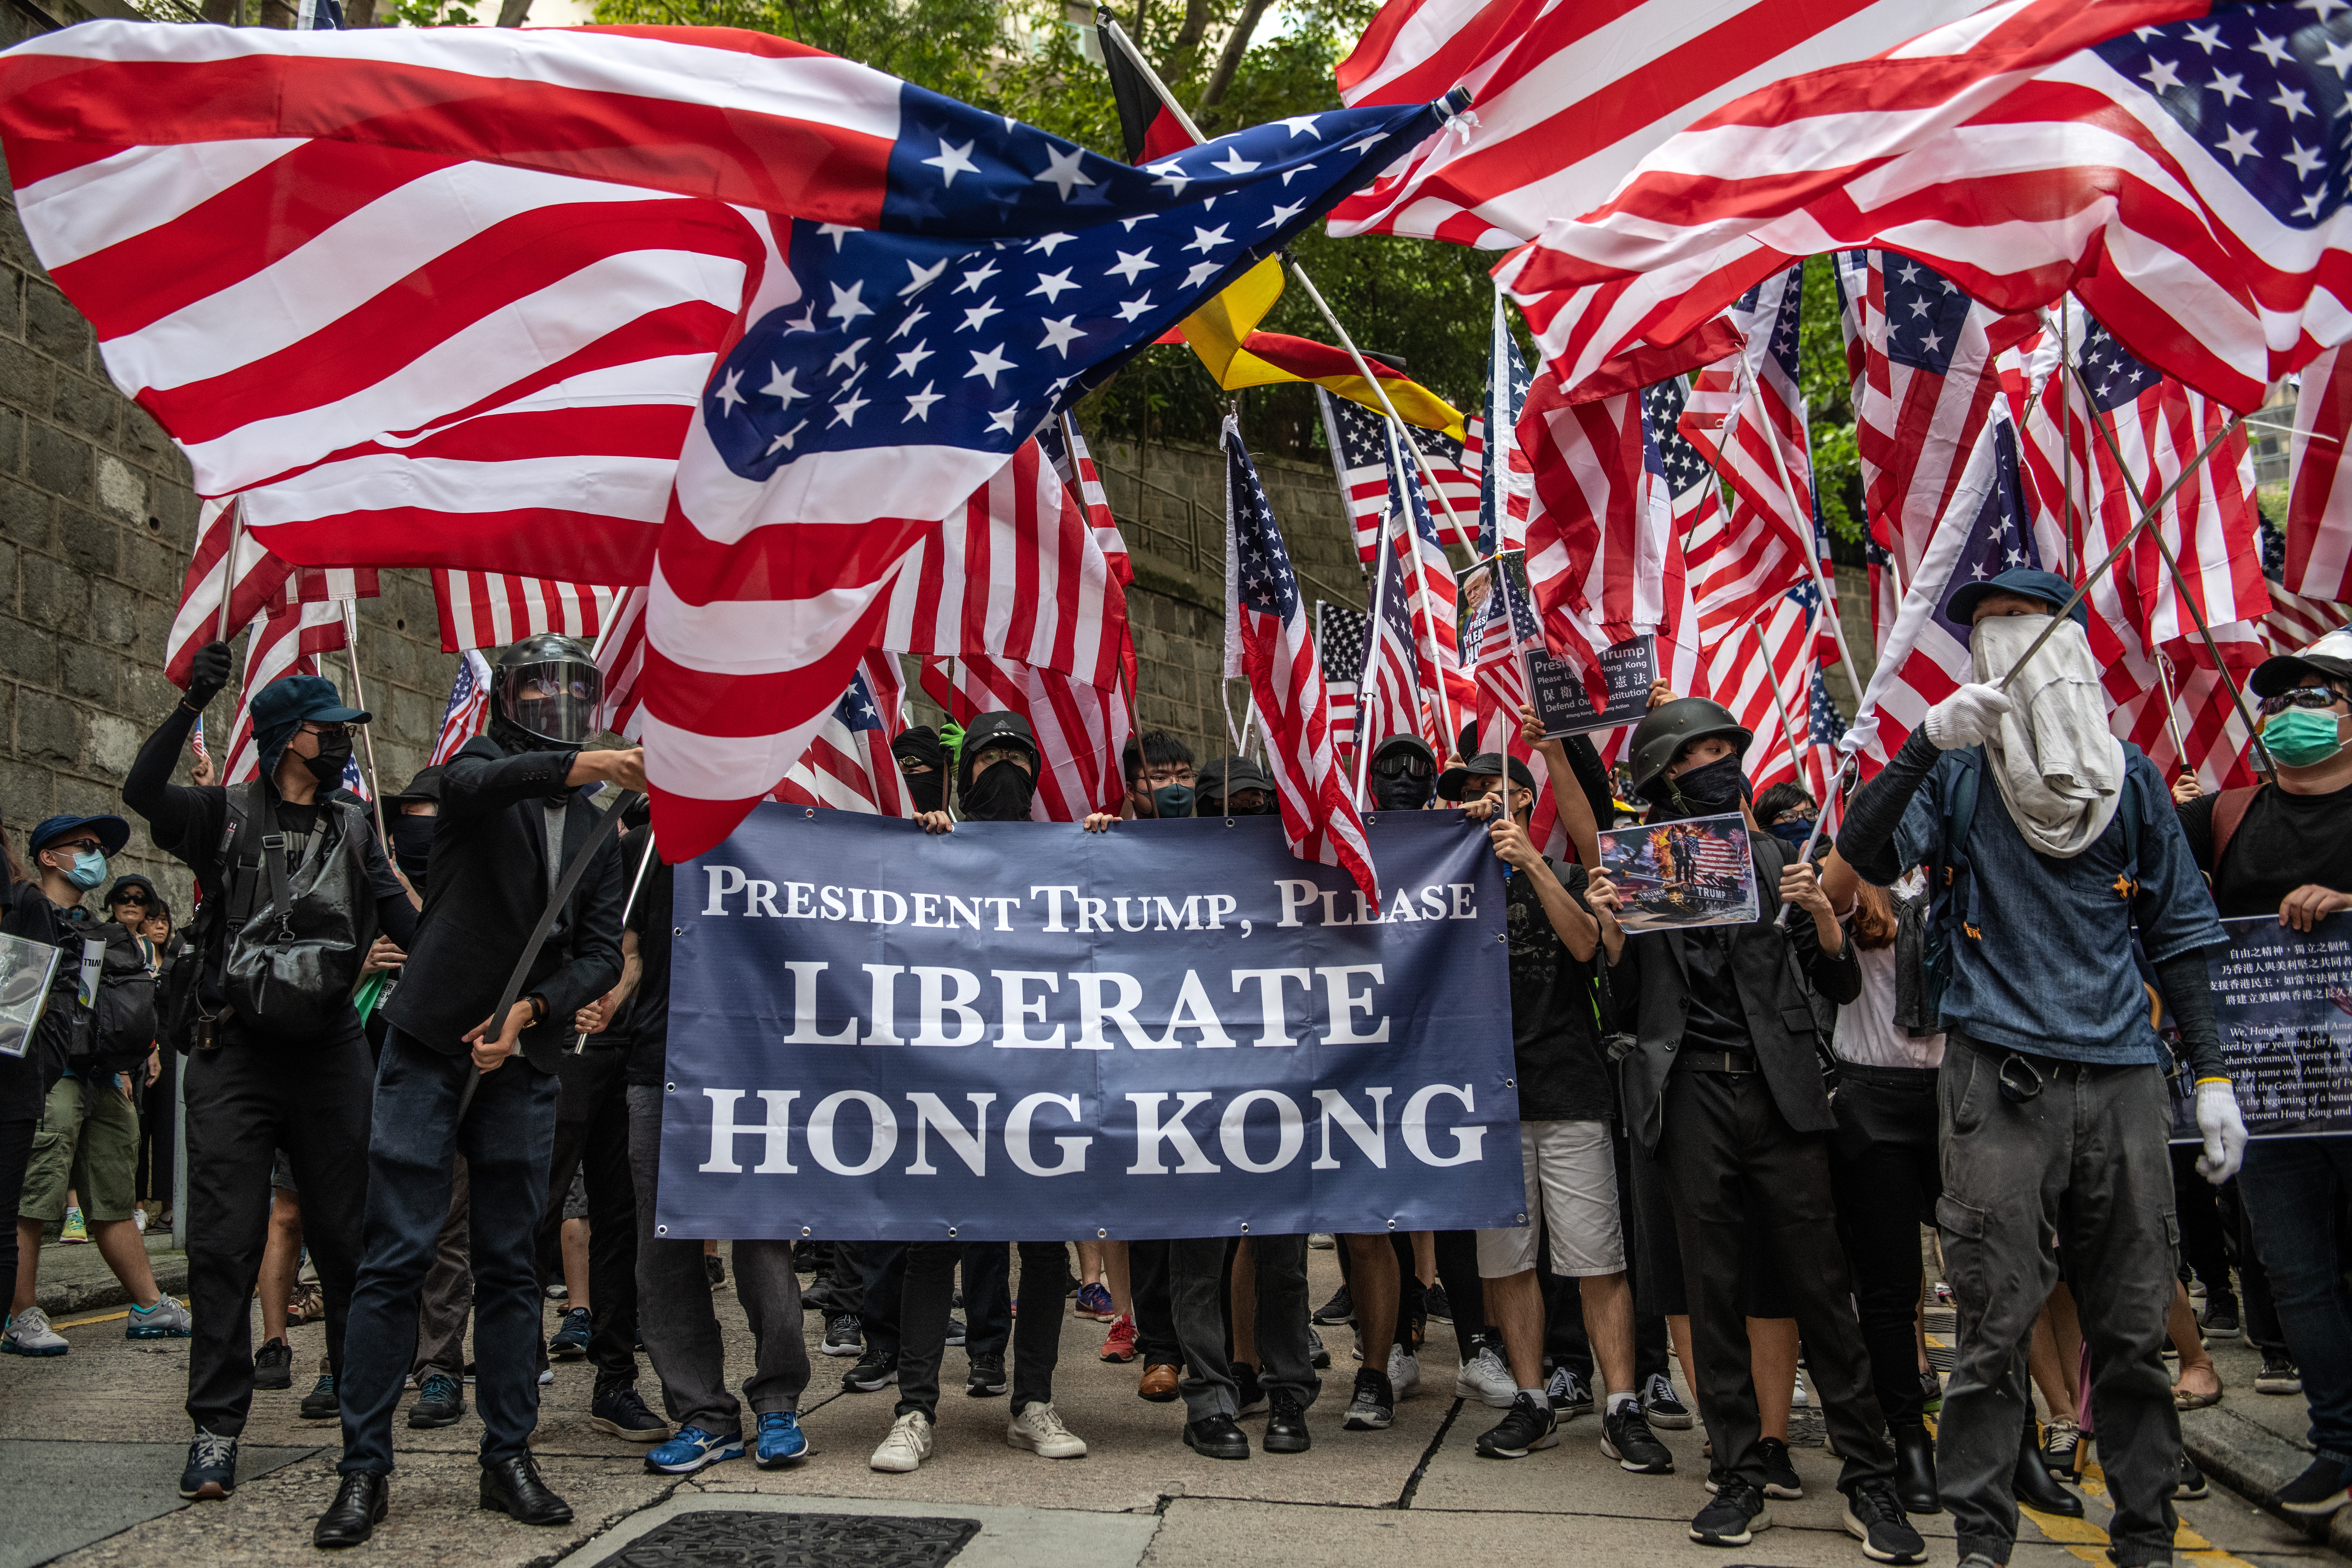 Protesters wave U.S flags outside the U.S consulate after delivering a petition on September 8, 2019 in Hong Kong, China. Pro-democracy protesters have continued demonstrations across Hong Kong despite the withdrawal of a controversial extradition bill as demonstrators call for the city's Chief Executive Carrie Lam to immediately meet the rest of their demands, including an independent inquiry into police brutality, the retraction of the word 'riot' to describe the rallies, and the right for Hong Kong people to vote for their own leaders. (Photo by Carl Court/Getty Images)